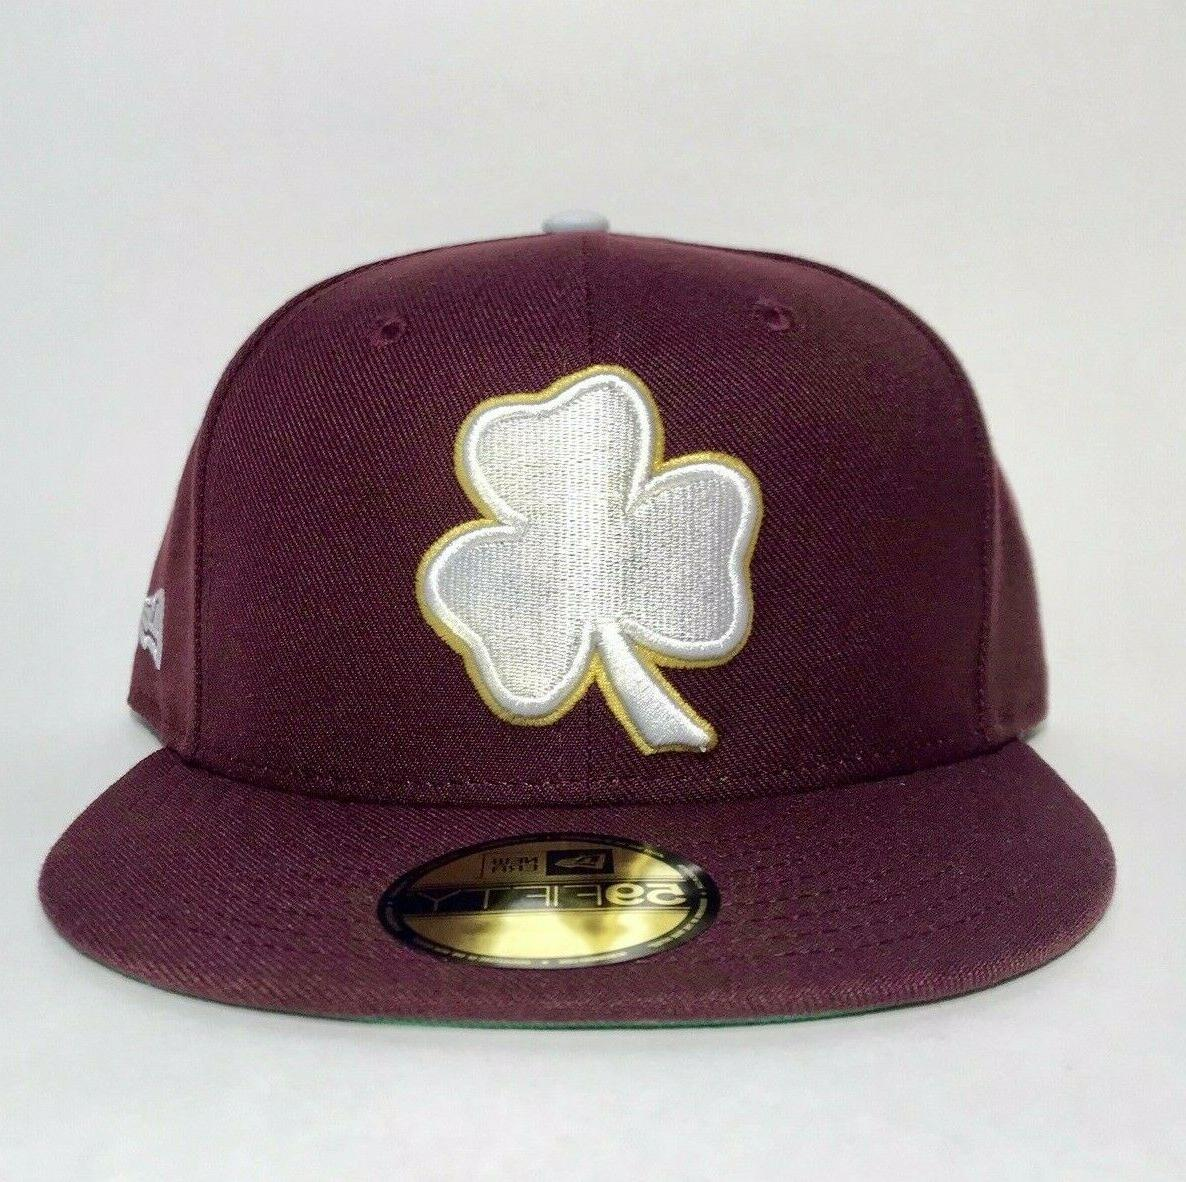 fitted hat cap 5950 maroon shamrock aquinas